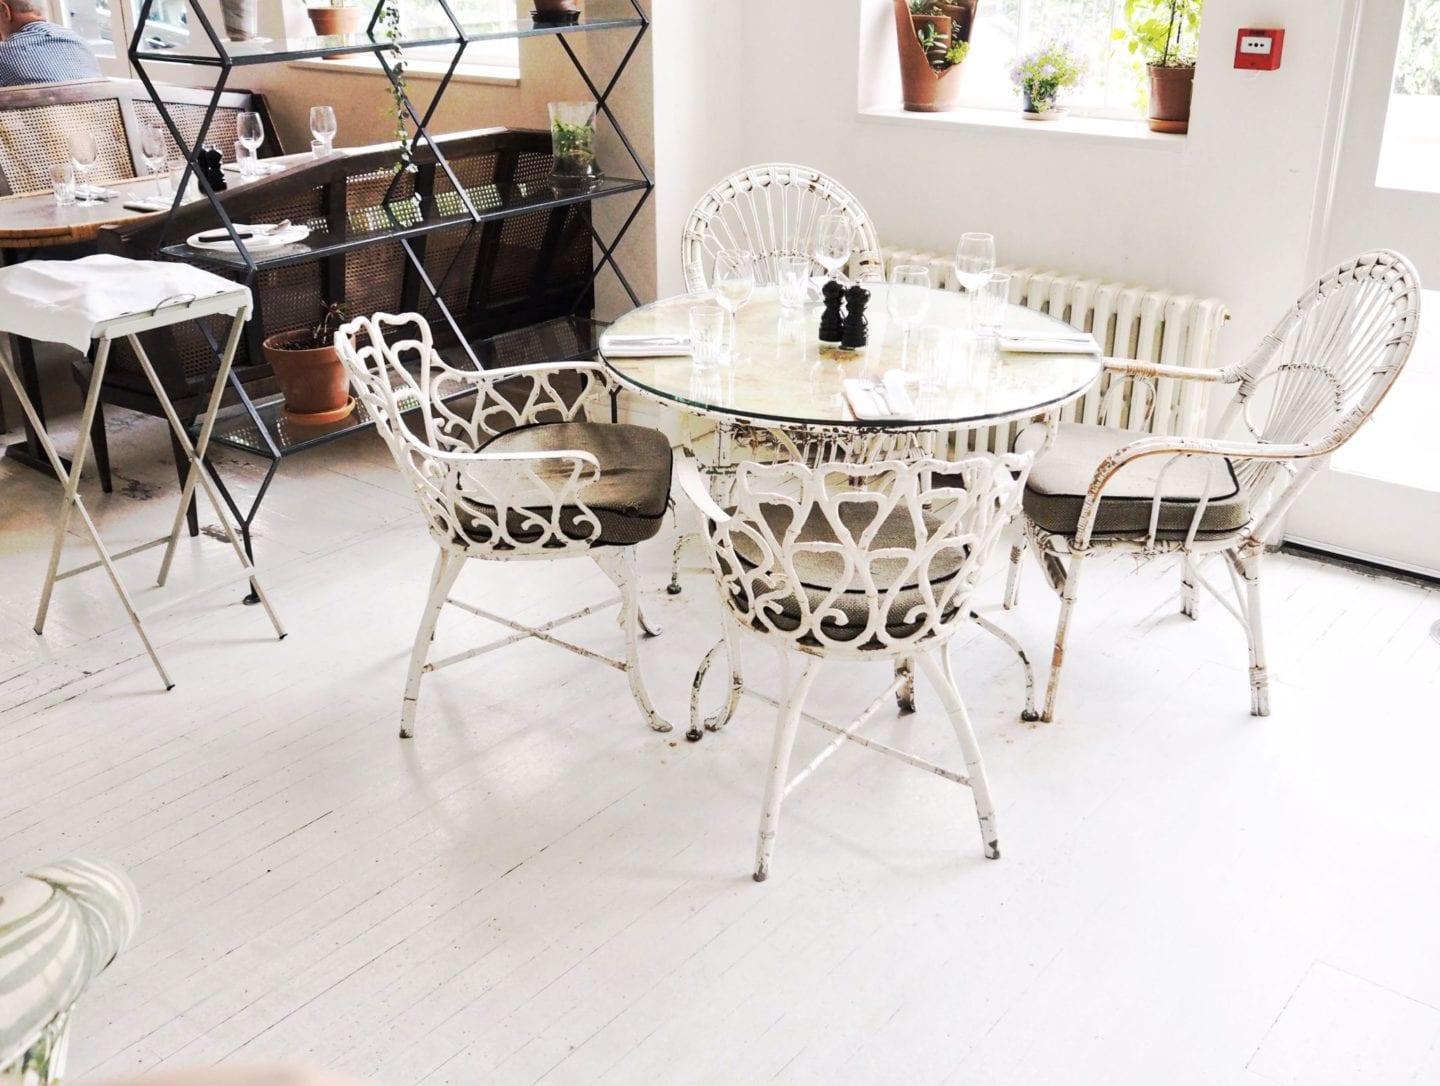 Bourne-Hollingsworth-buildings-london-beautiful-table-and-chairs